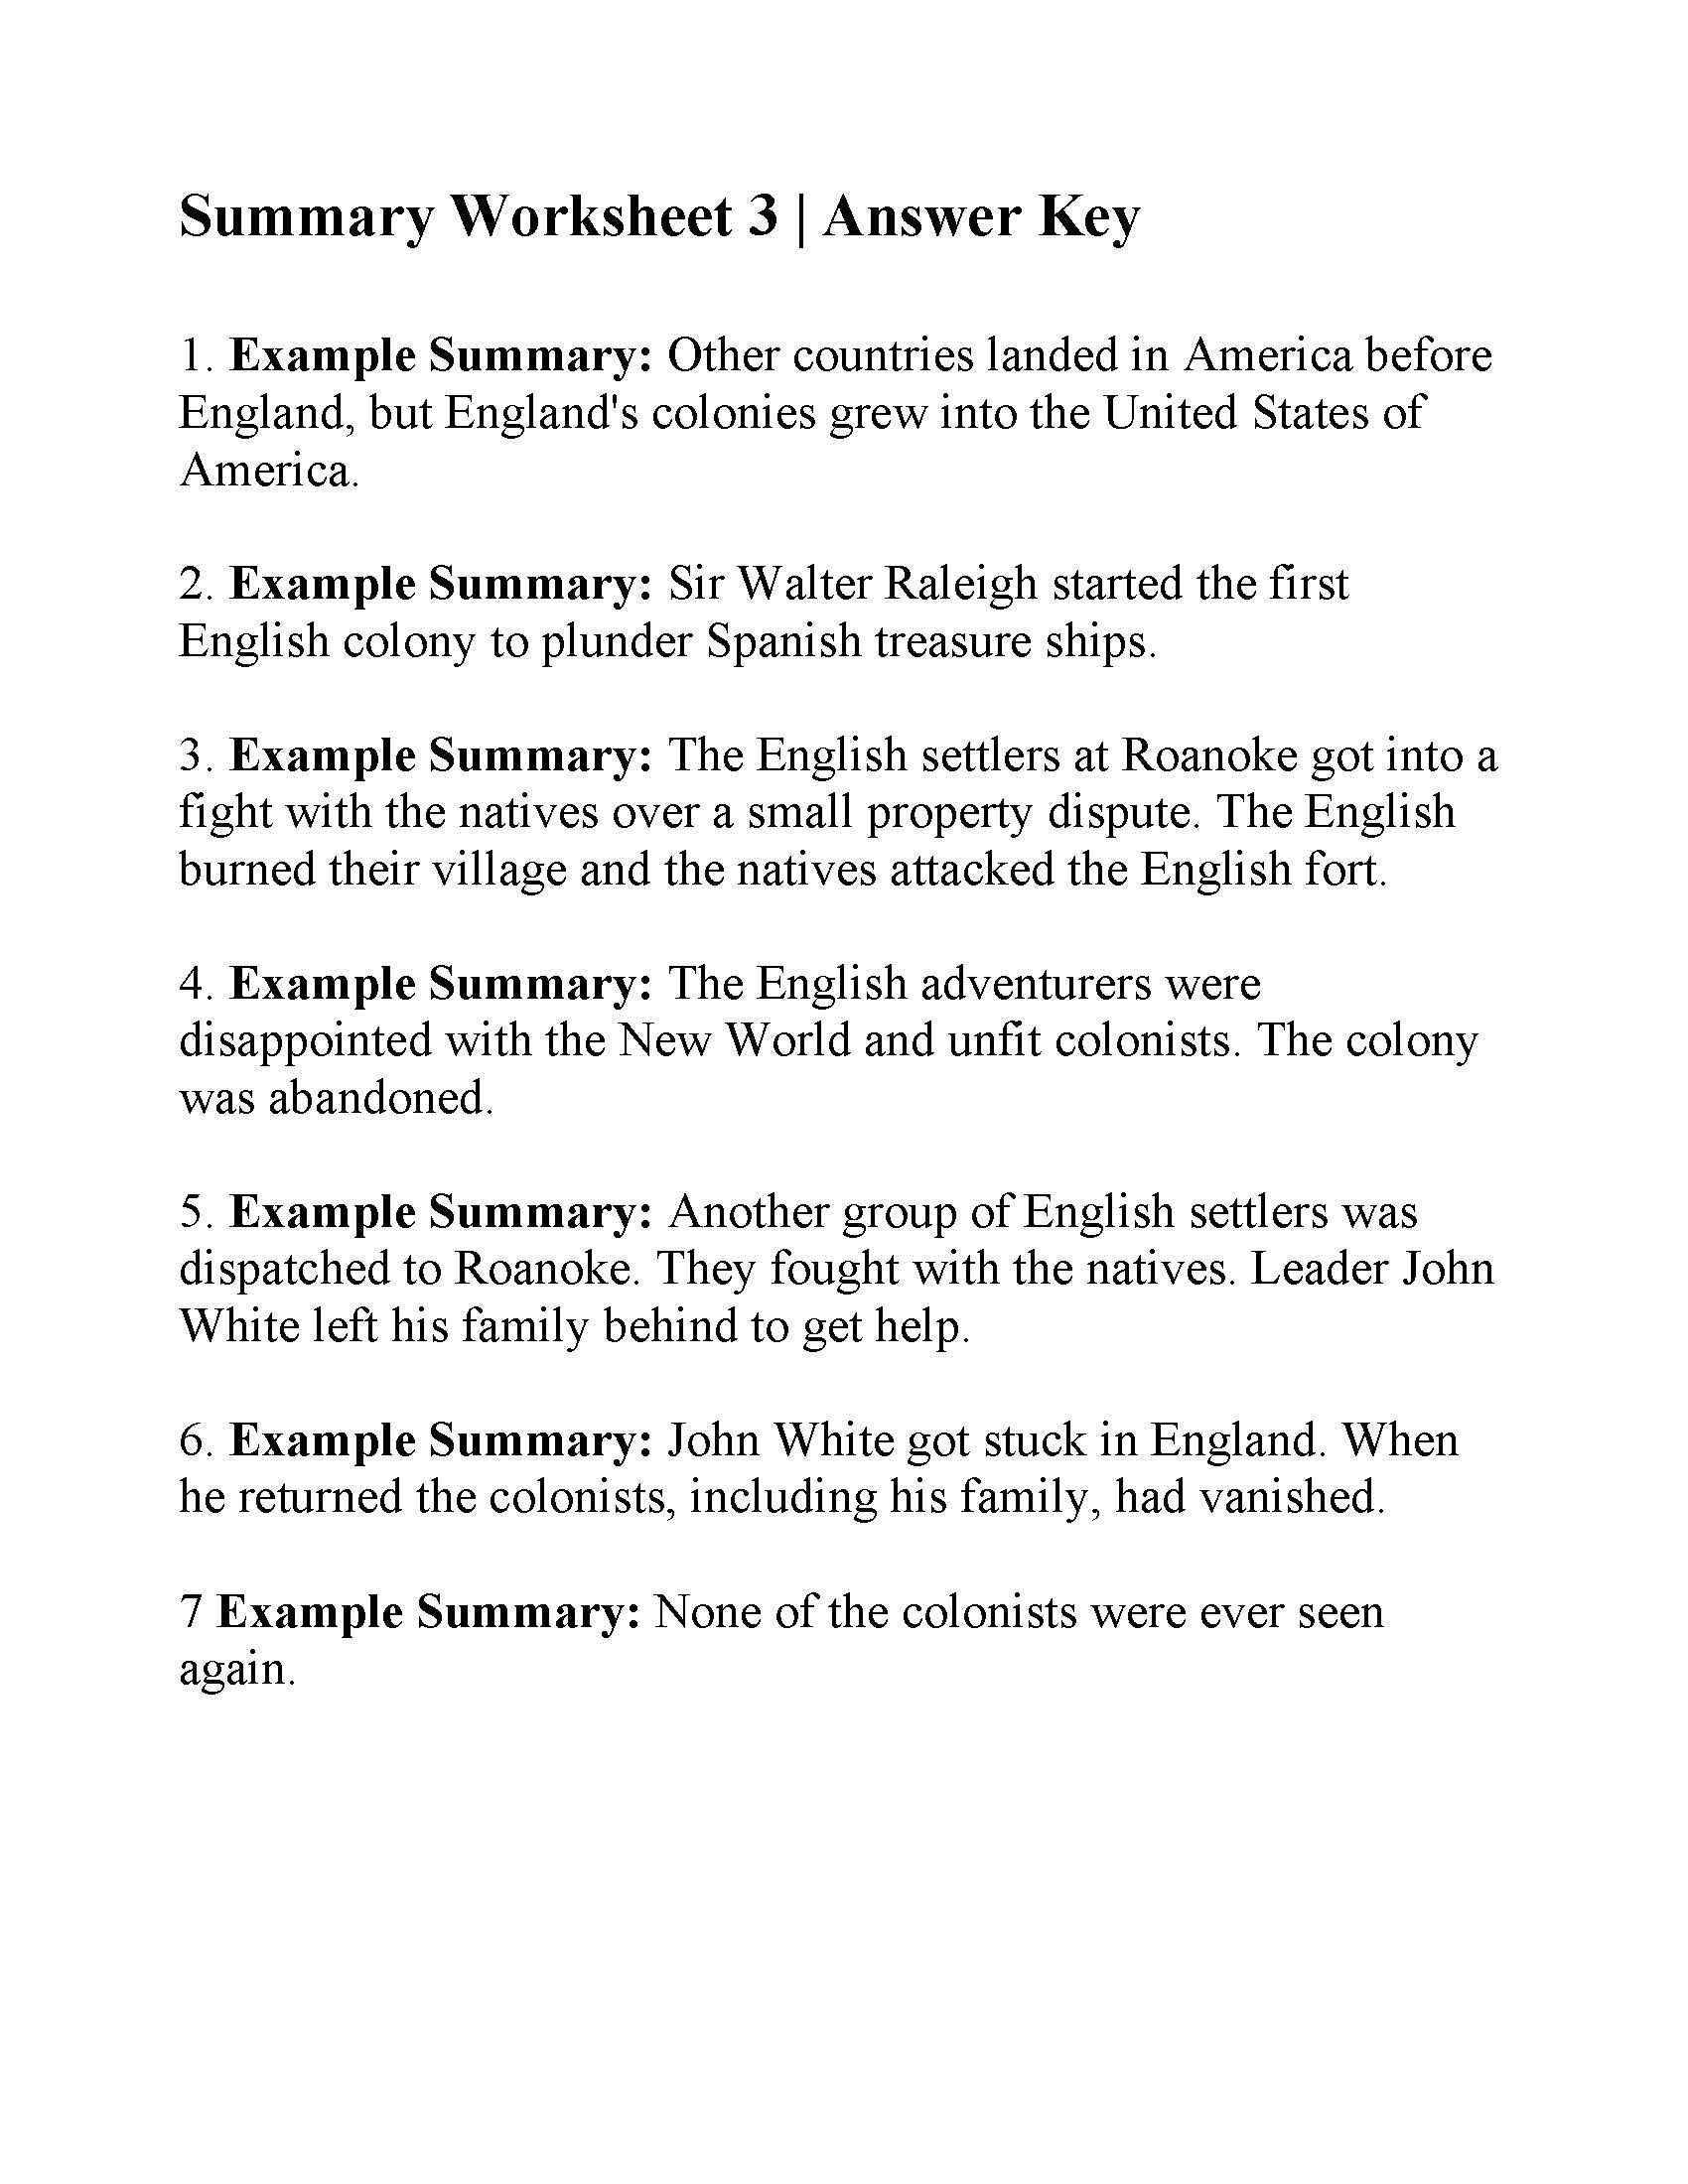 Summarizing Worksheet 4th Grade Summary Worksheet 3 Answers